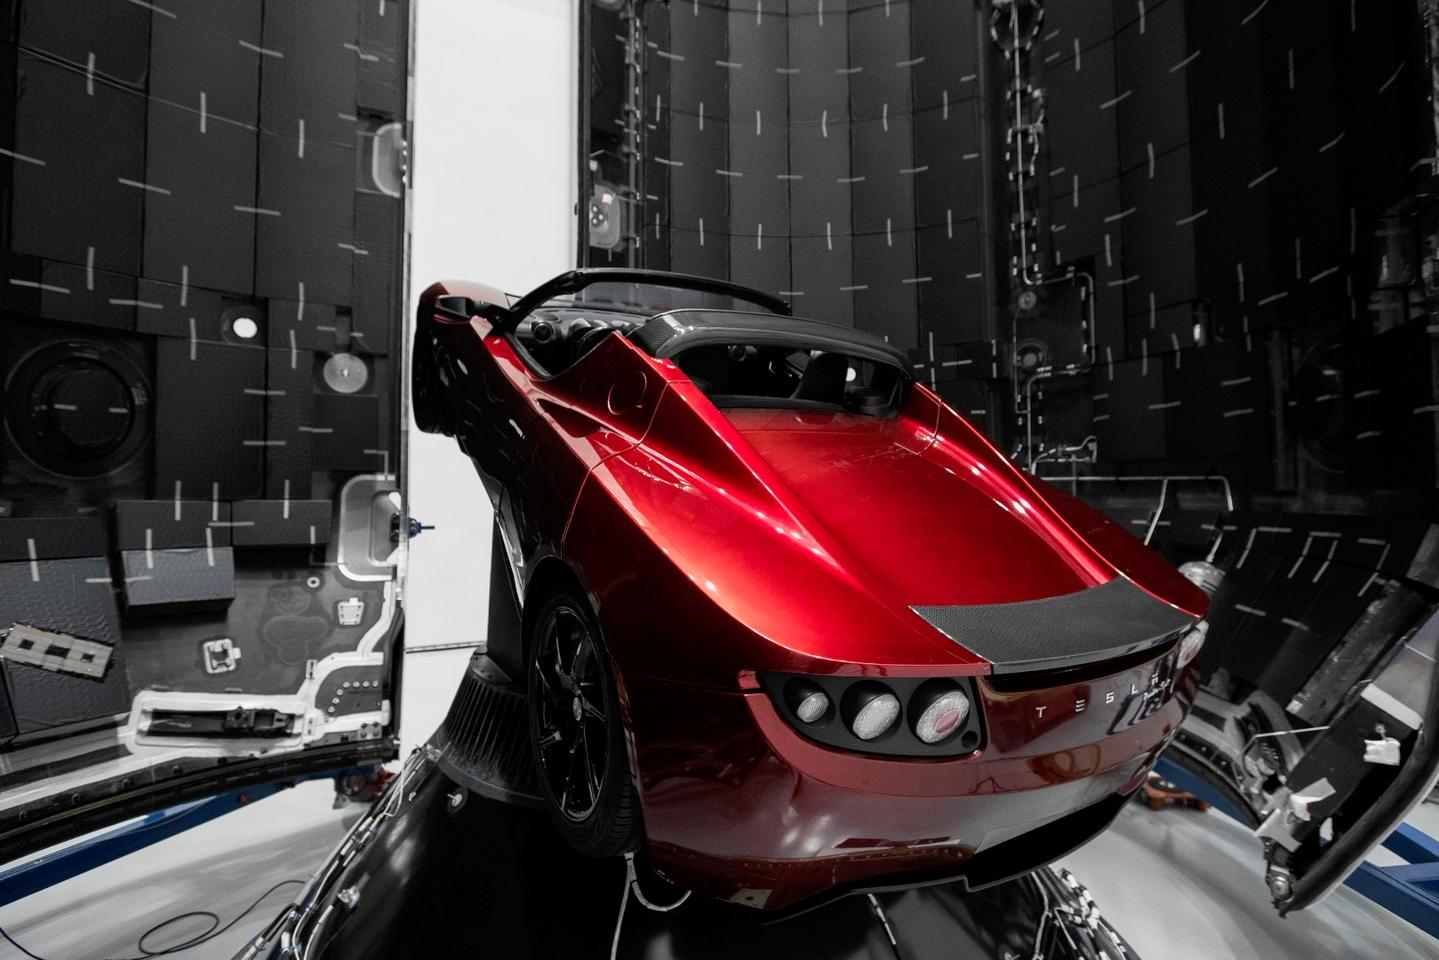 Elon Musk first tweeted about blasting his midnight cherry red Tesla Roadster into space in early December